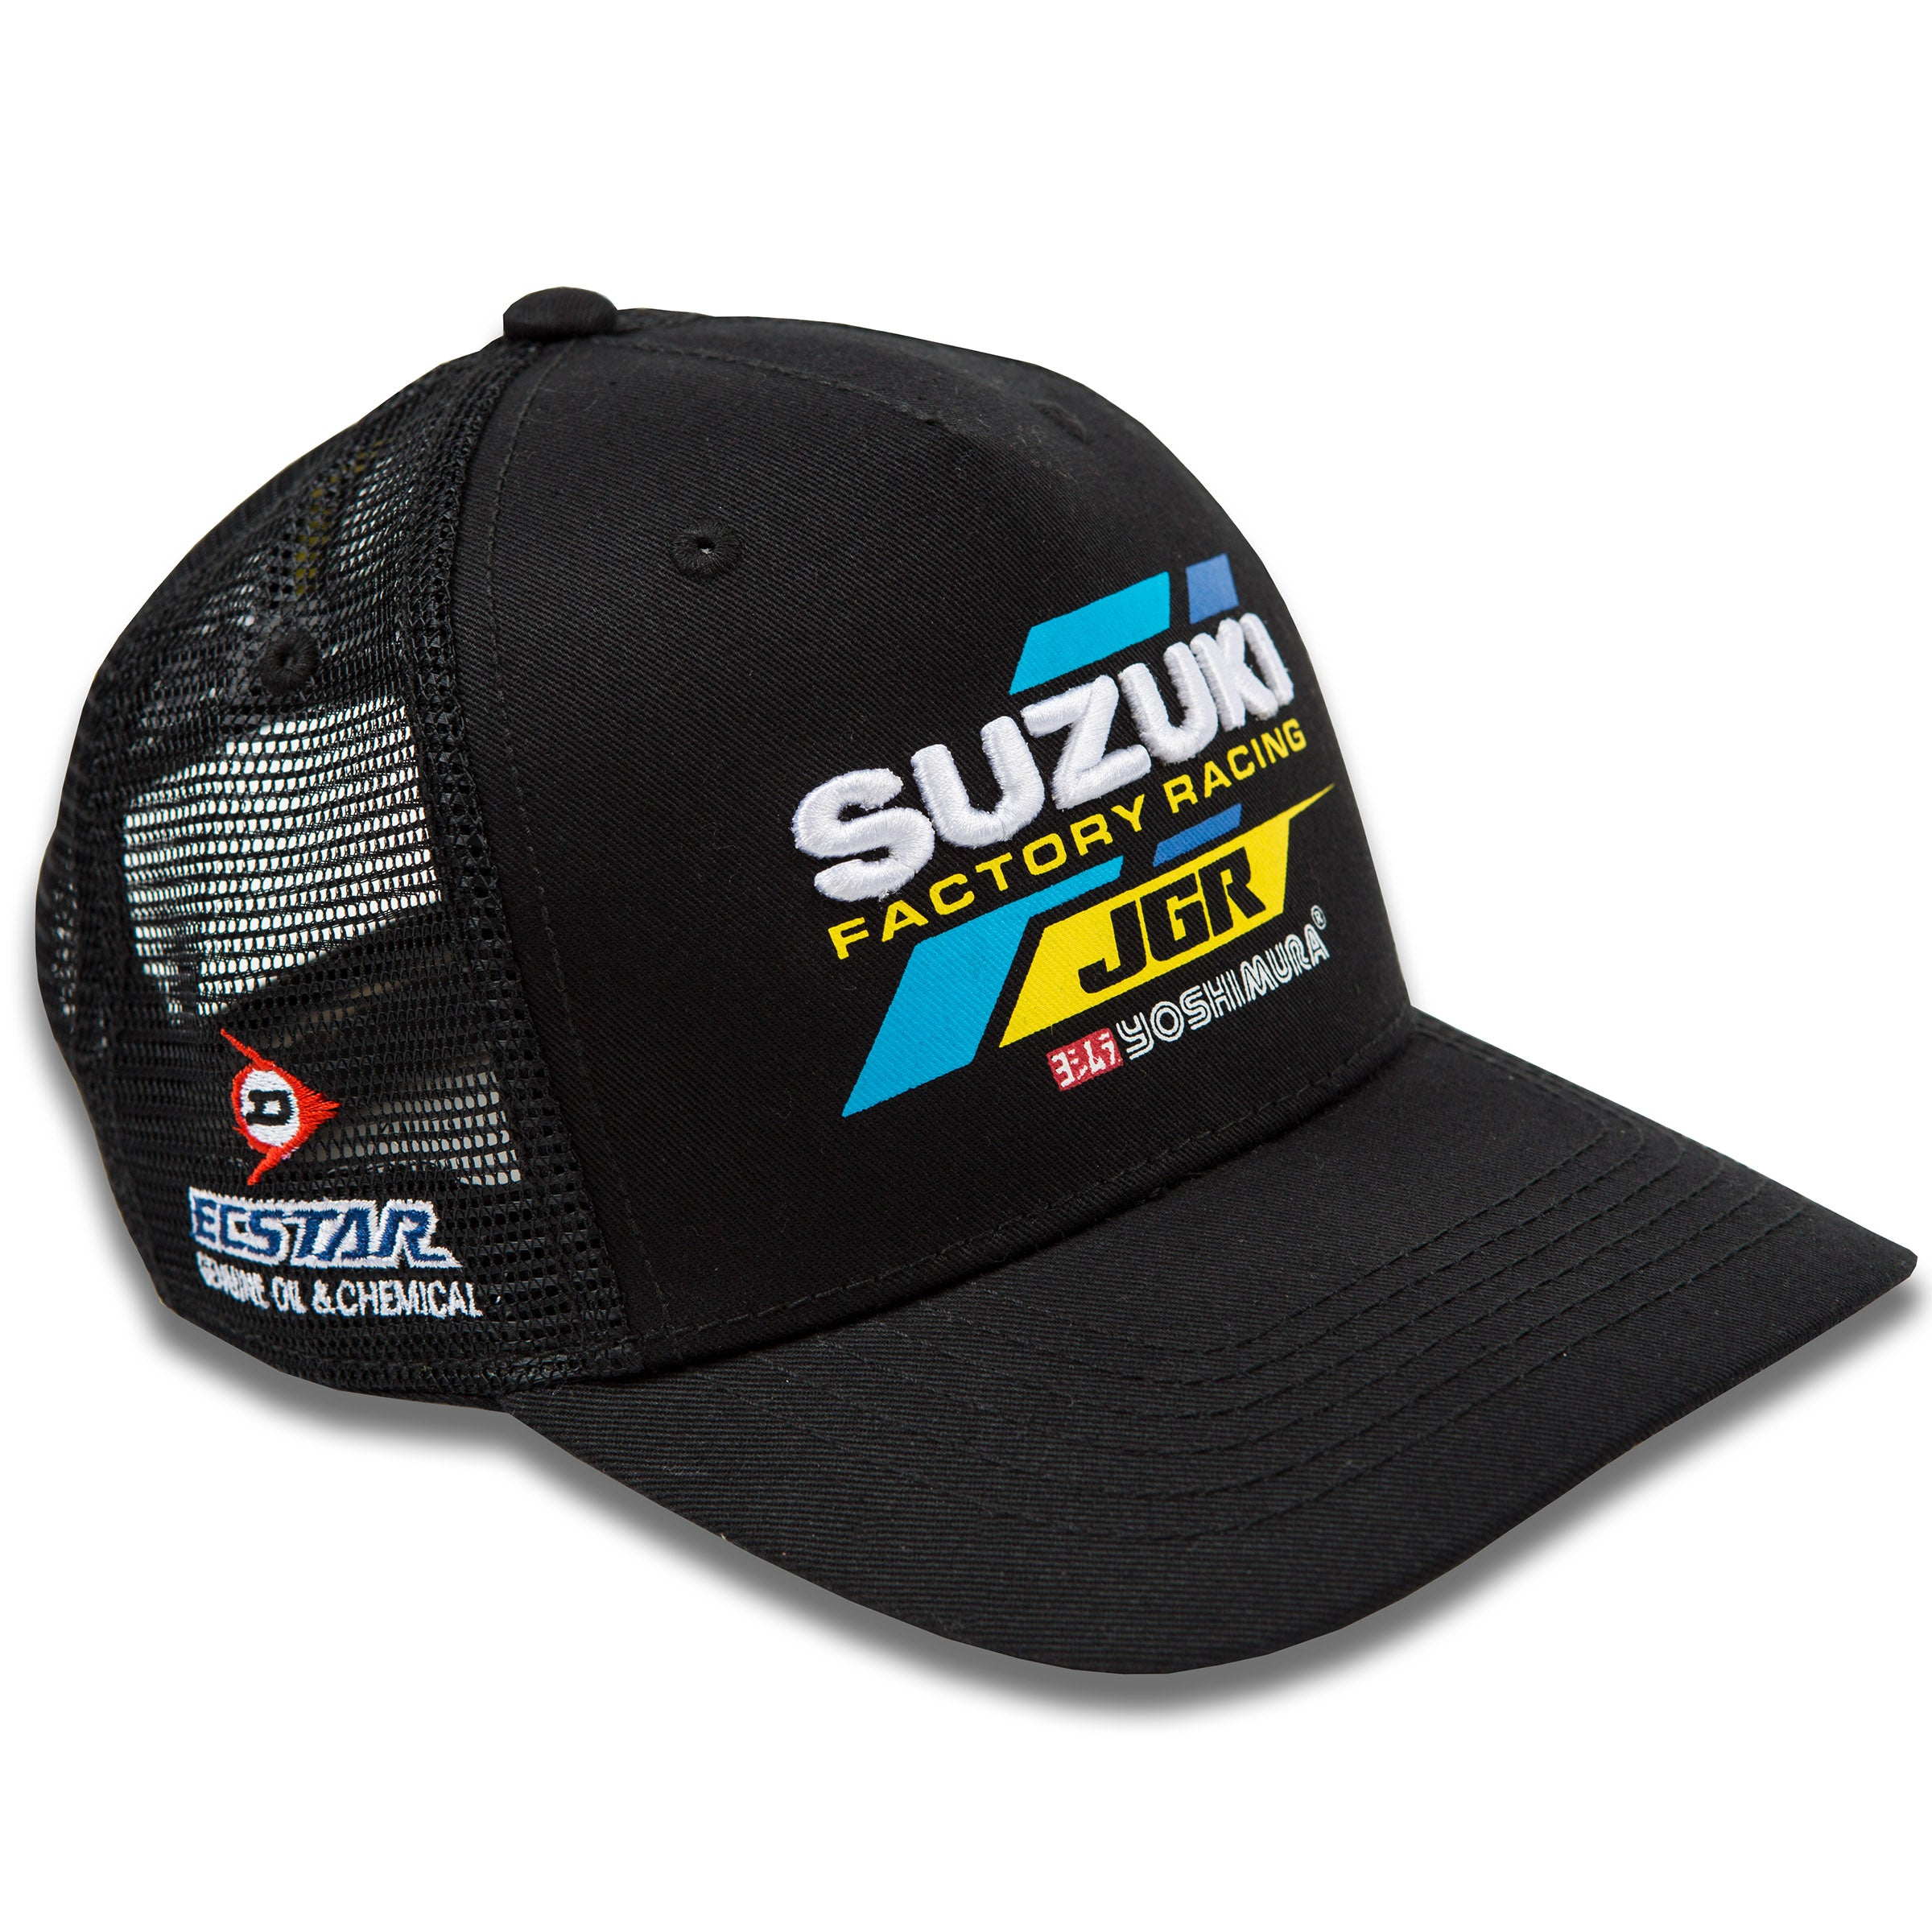 232c4b65ff9 2019 JGRMX Team Hat (Curved Bill)